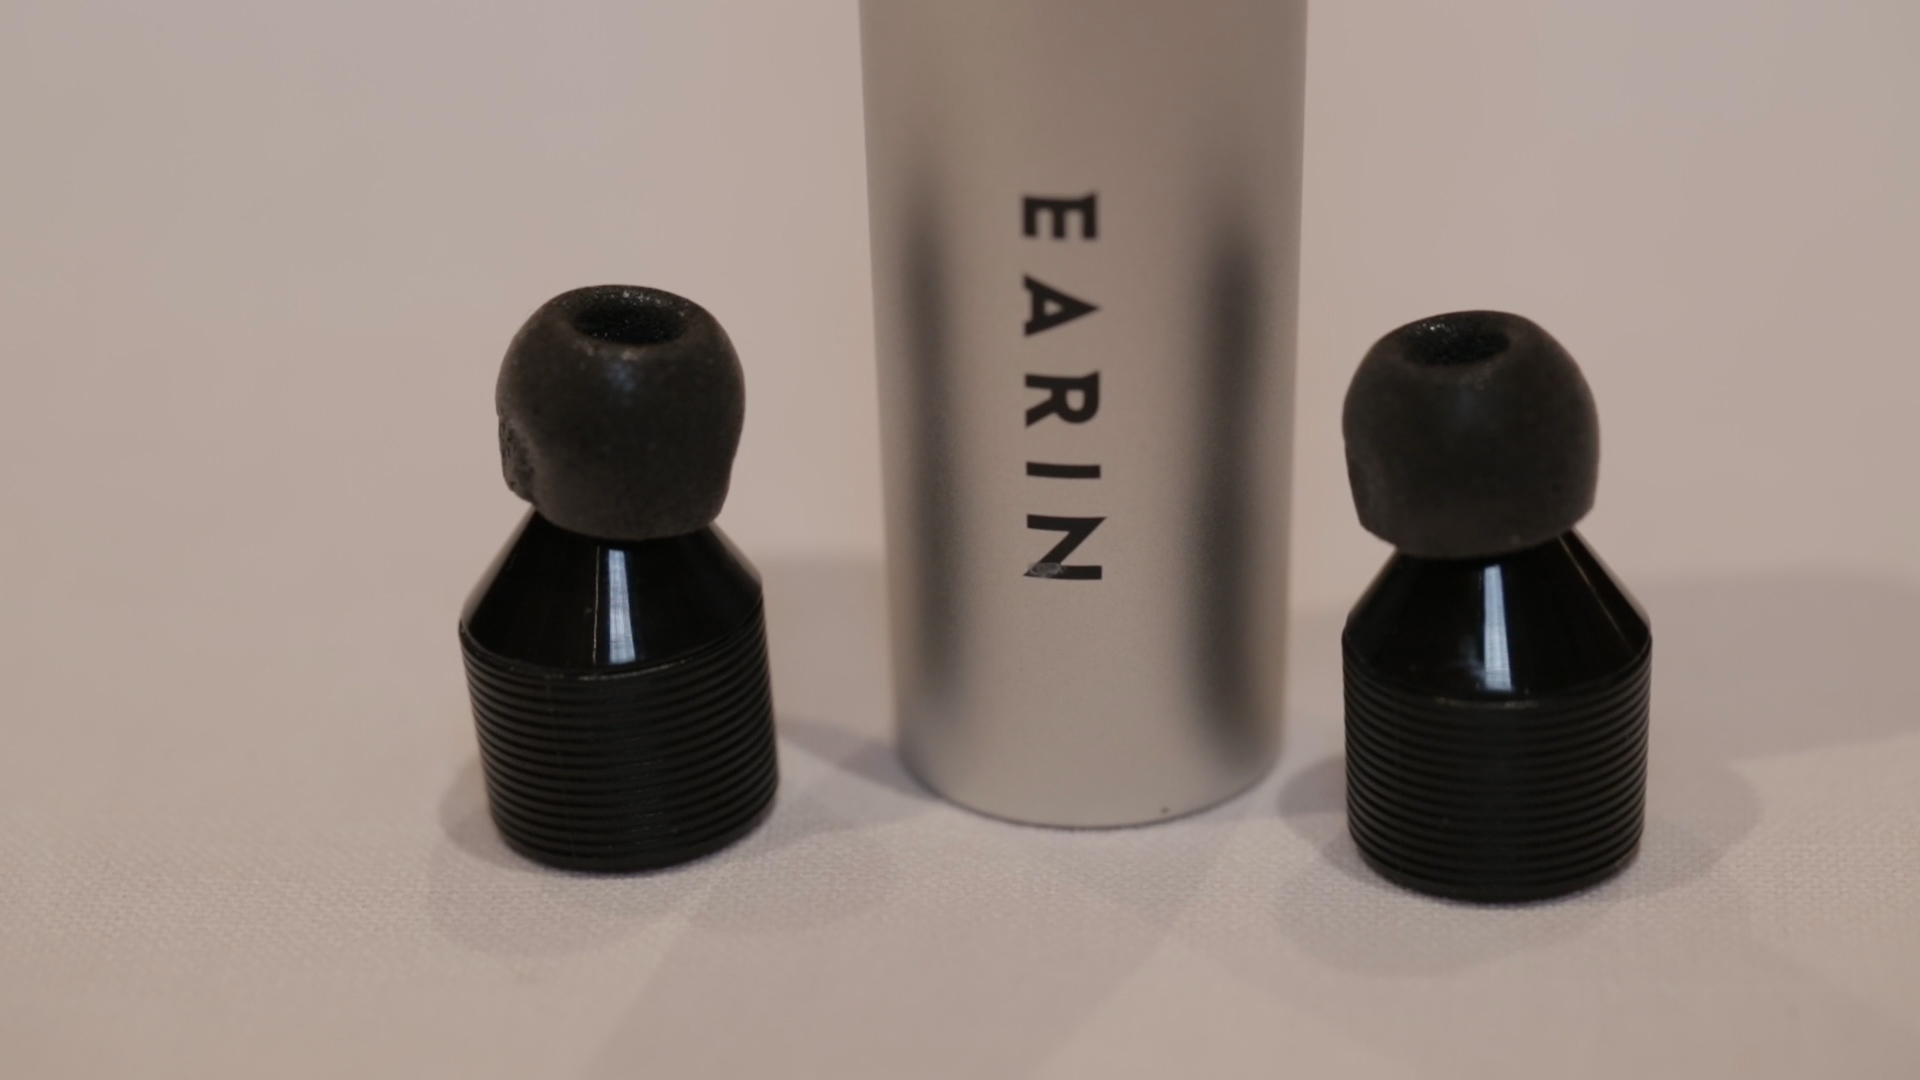 Video: These tiny, wireless earbuds come at a big price